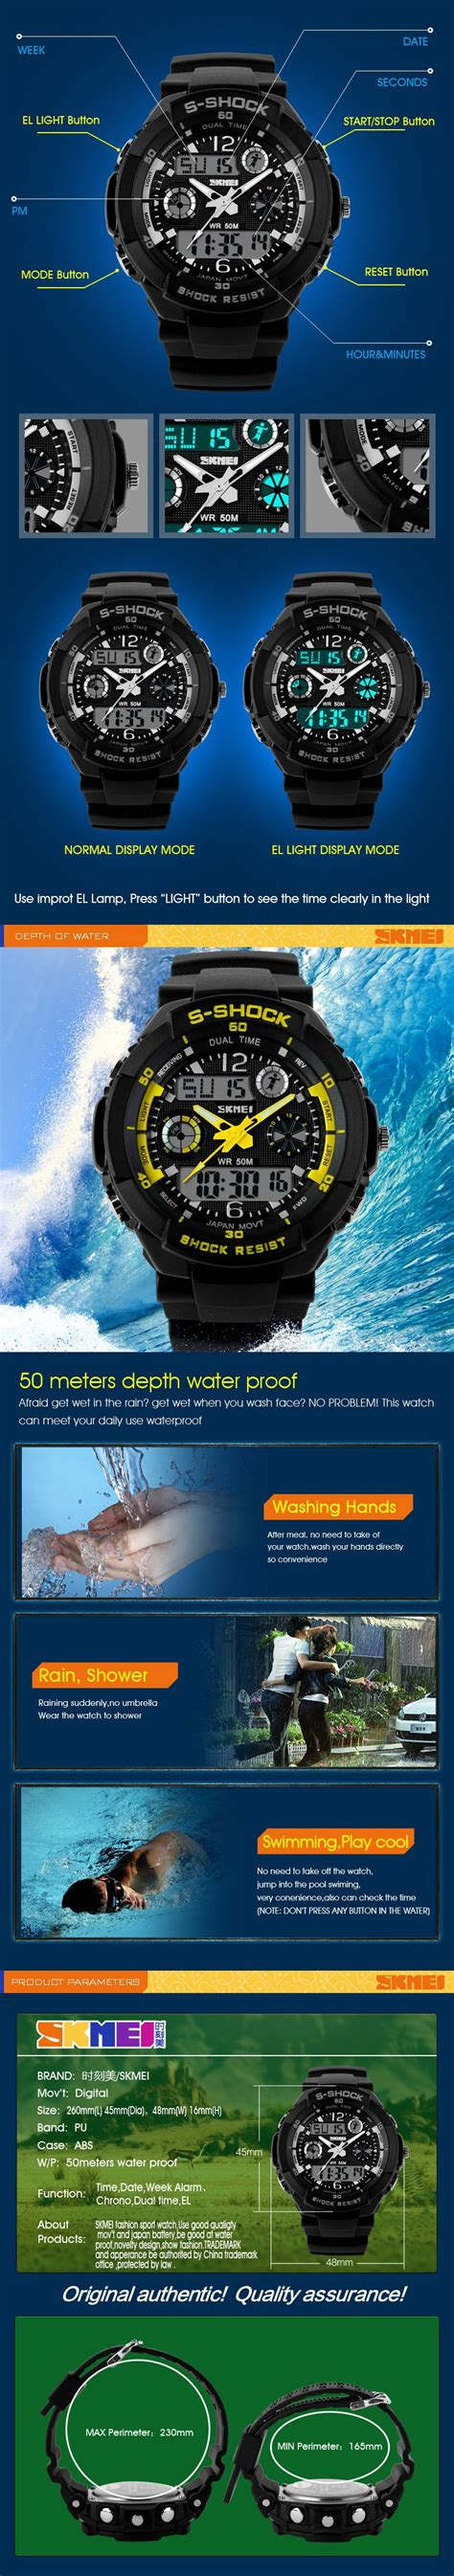 Jam Tangan D Ziner Original Waterproof 8219 Black outdoor sports waterproof shockproof mountaineering electronic watches jam